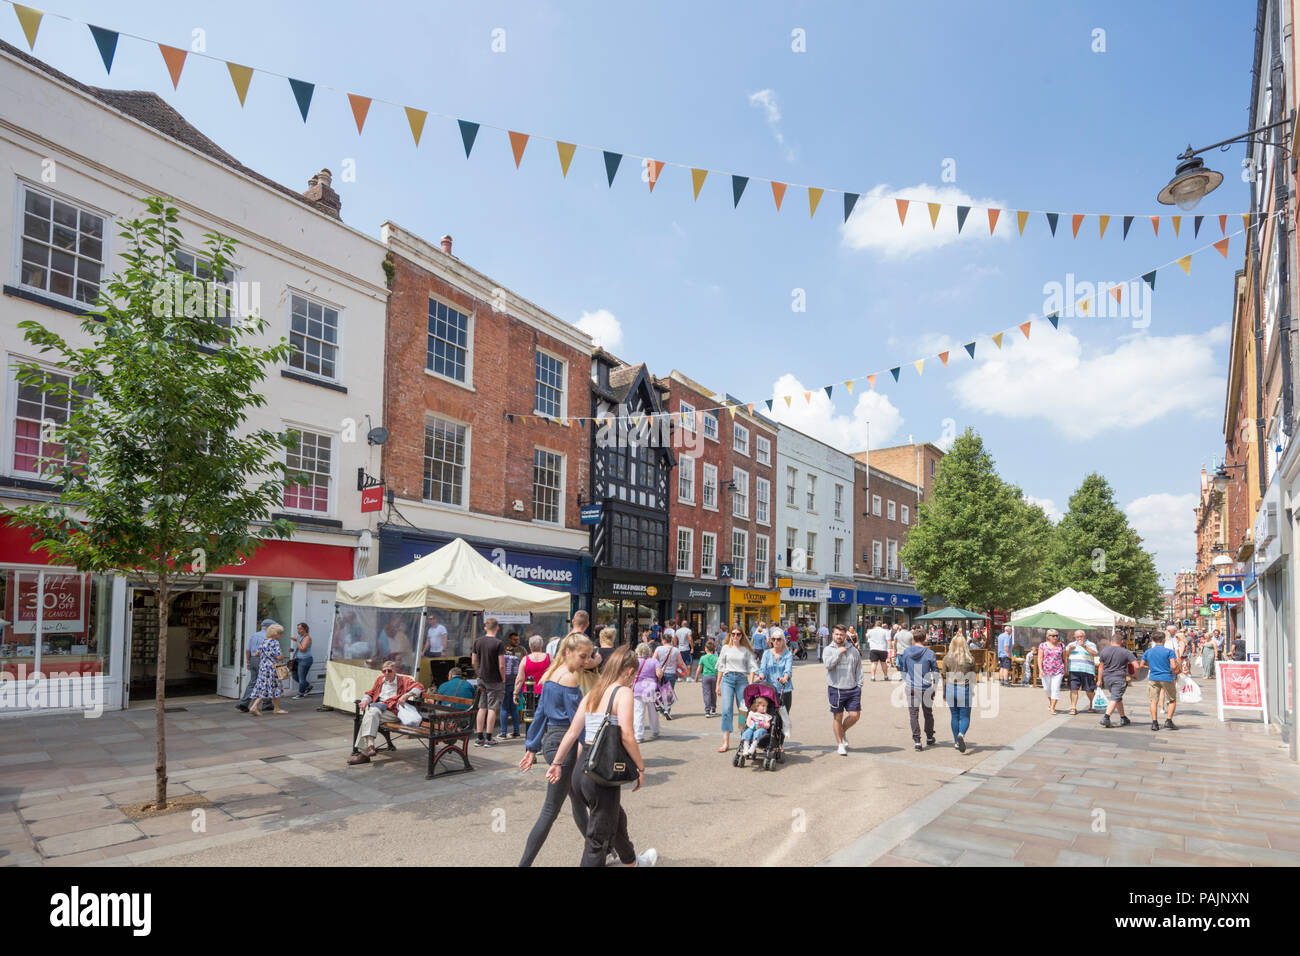 Worcester city high street, England, UK - Stock Image